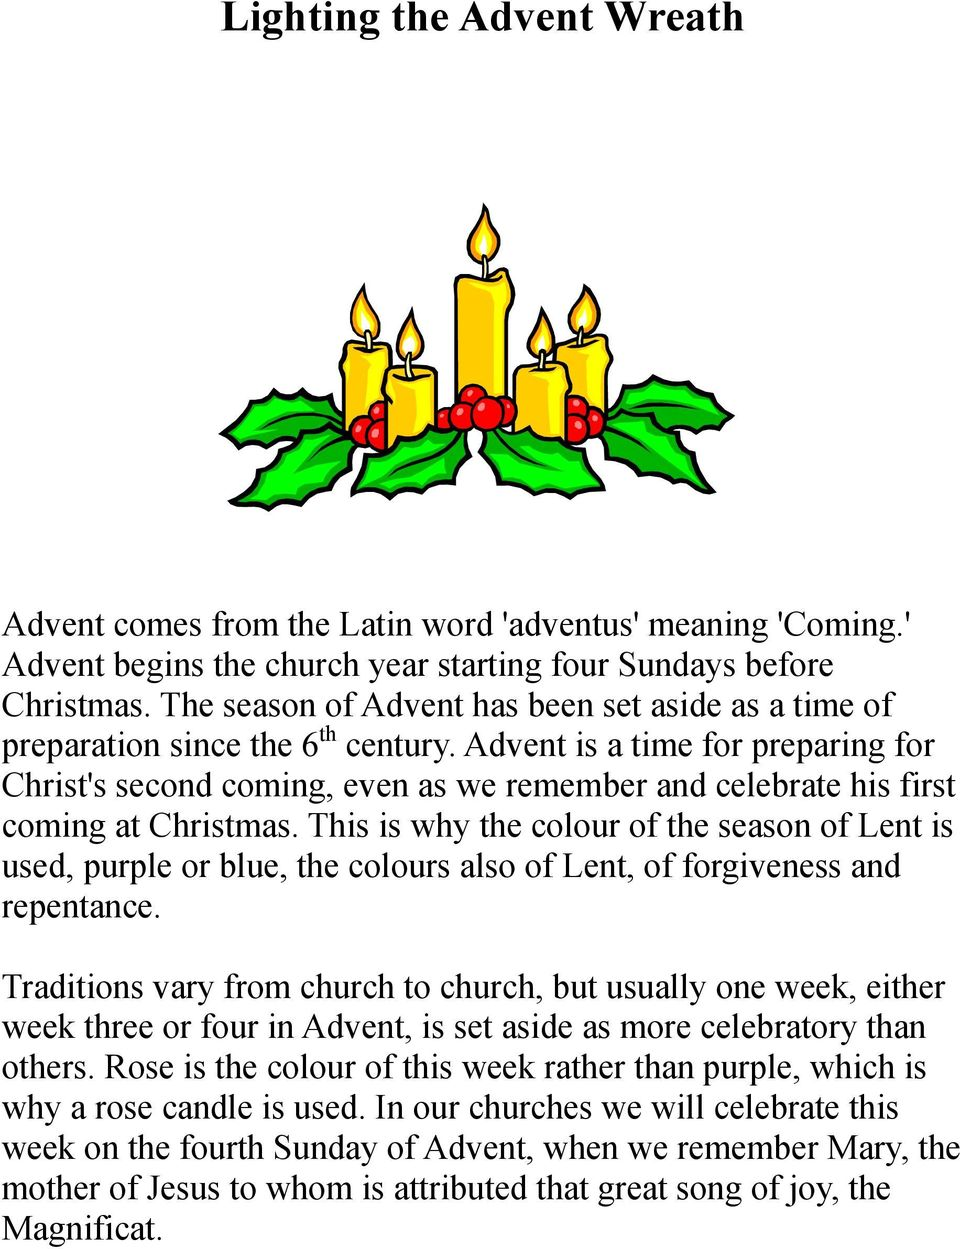 Advent is a time for preparing for Christ's second coming, even as we remember and celebrate his first coming at Christmas.